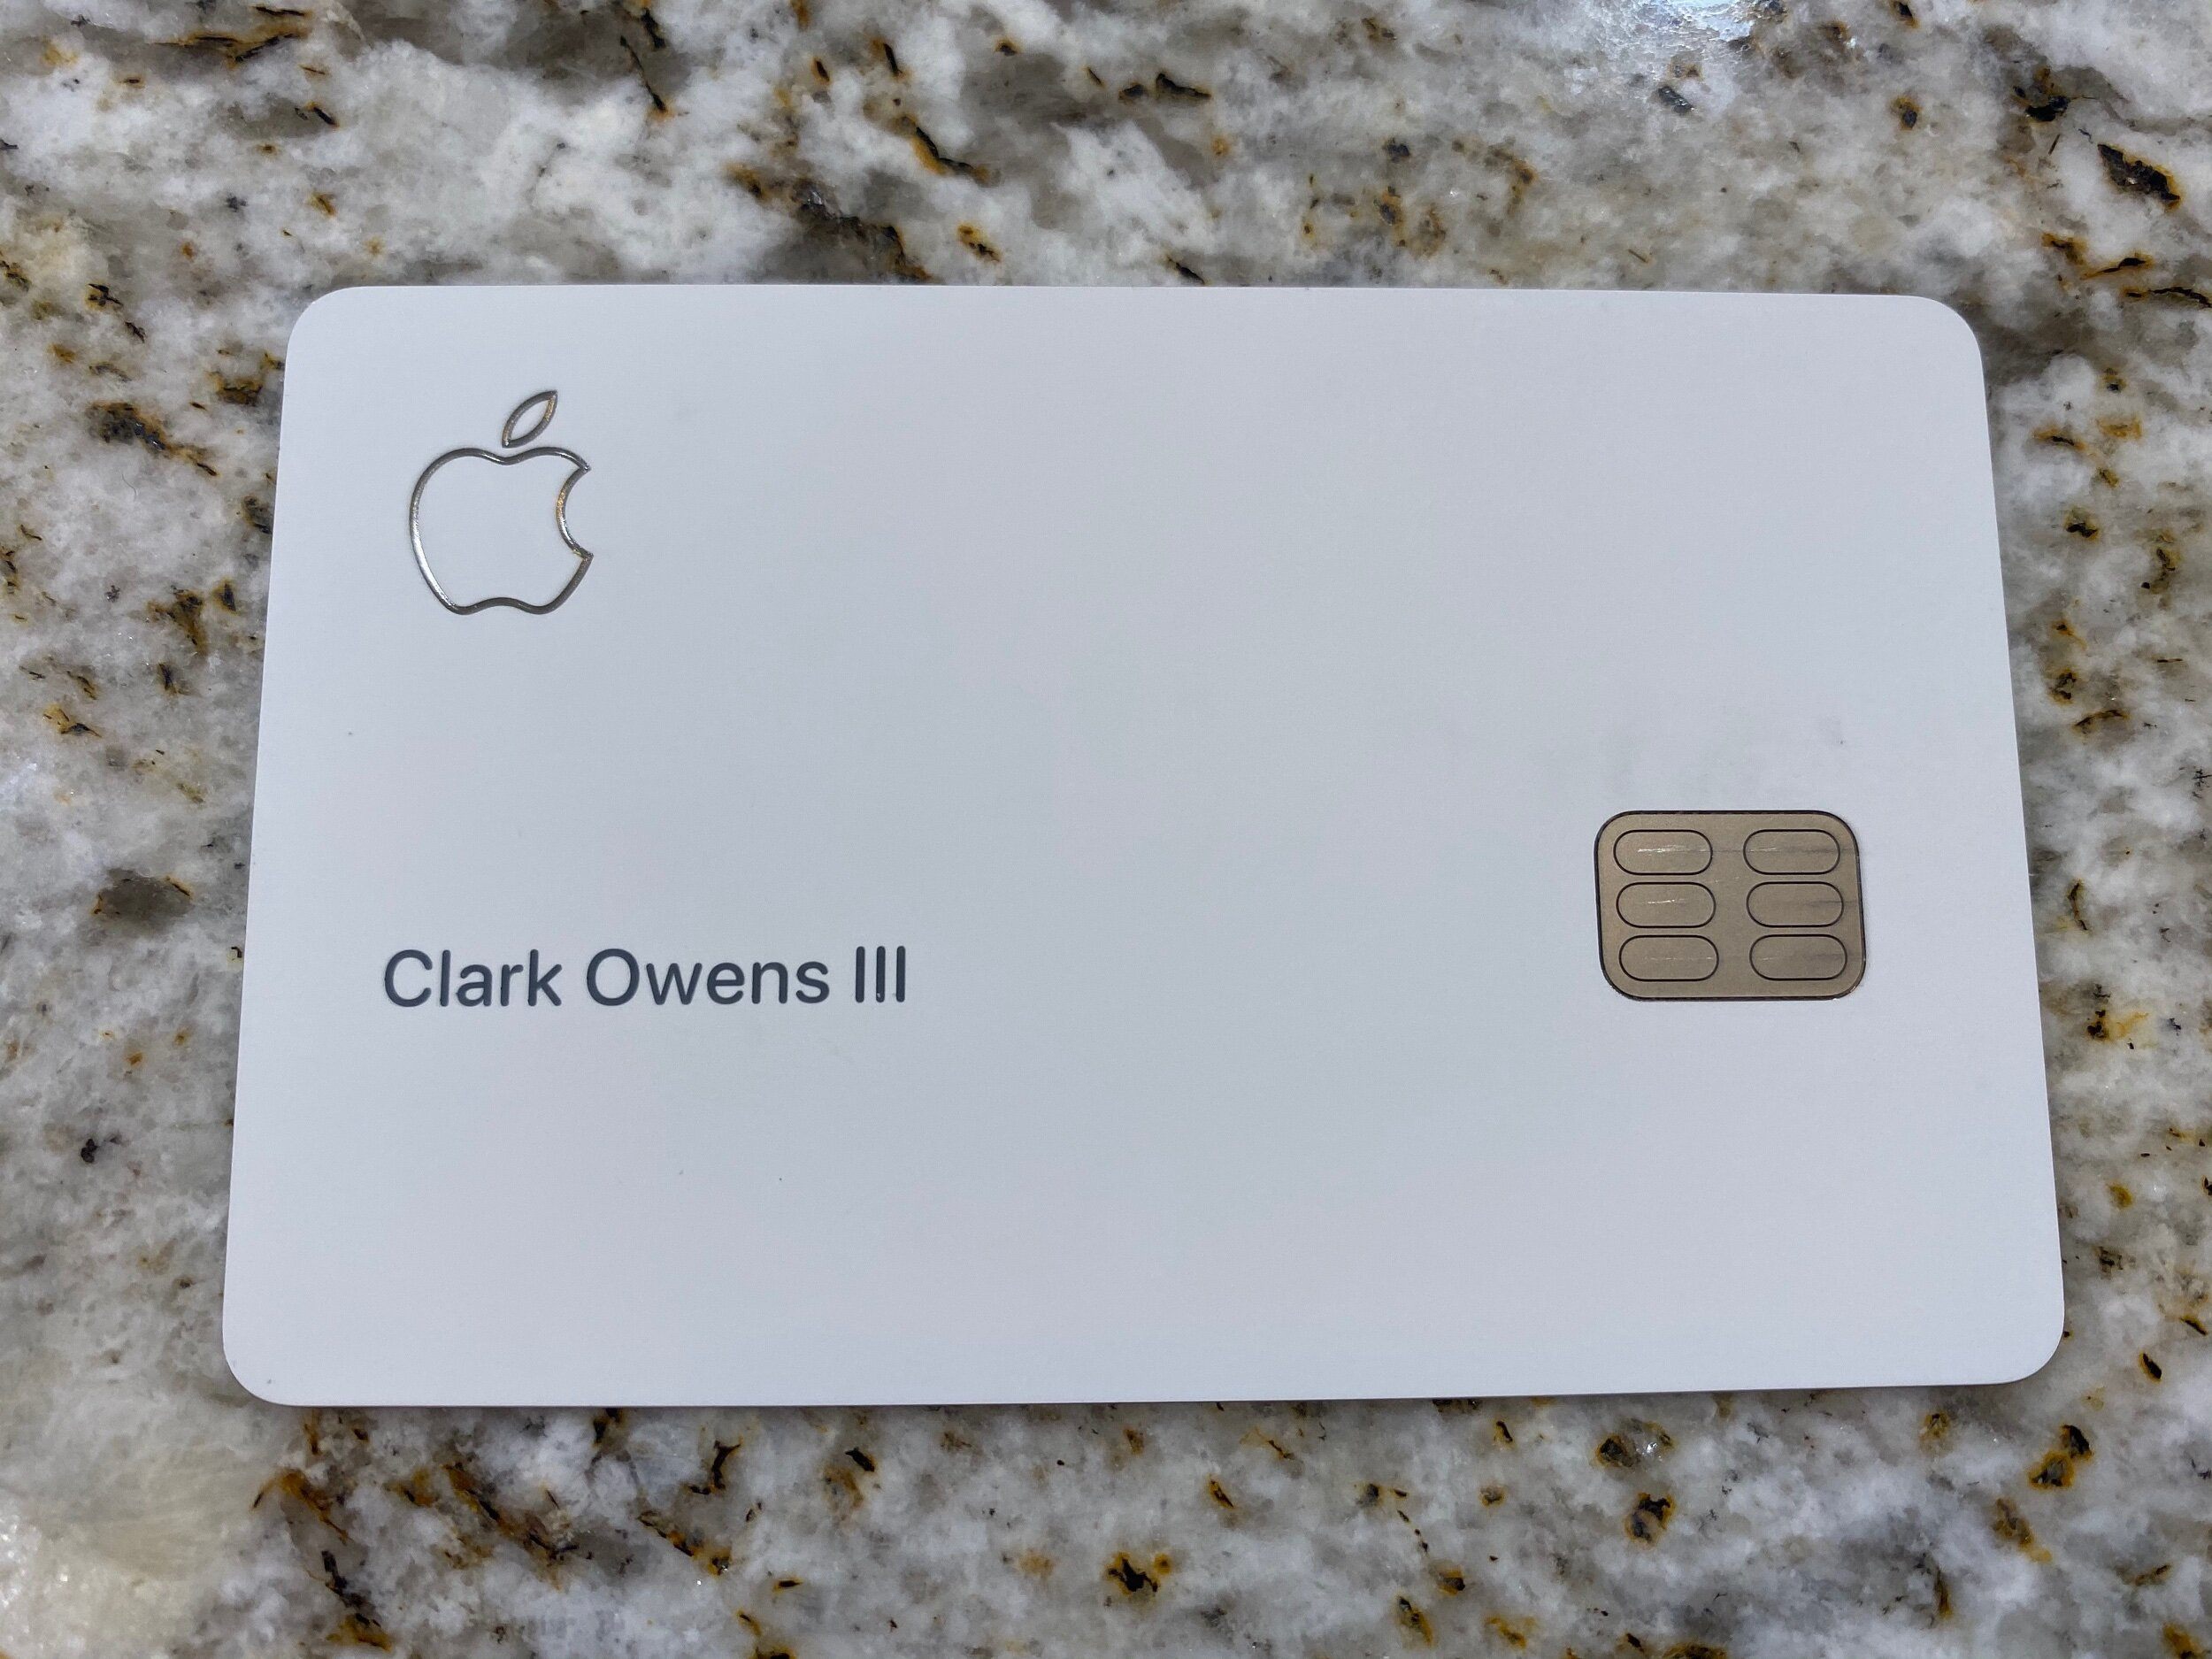 Bet you don't want to take a photo of your regular credit card and post online do you?